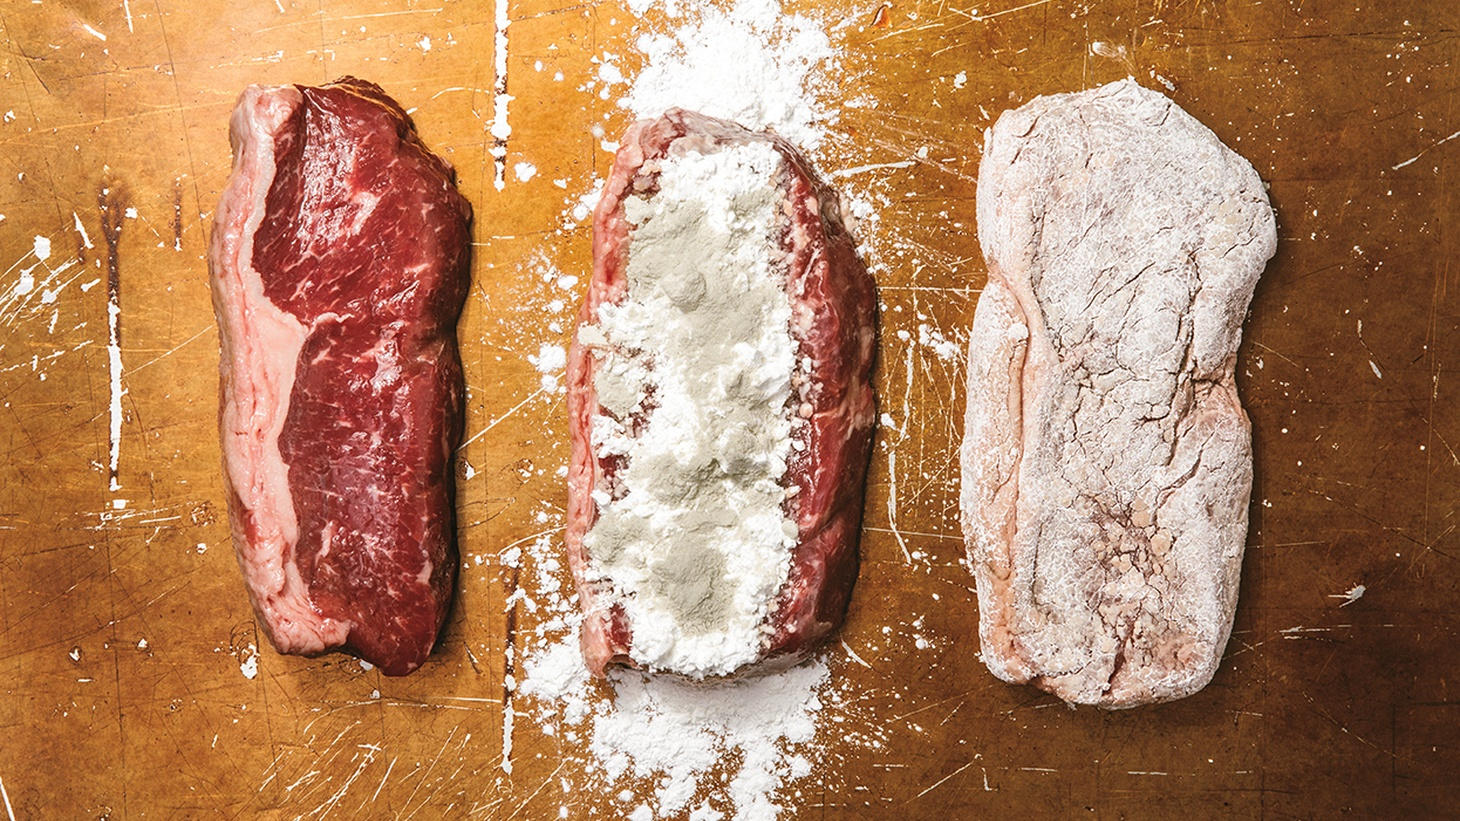 Using koji-cultured steak and replacing salt with miso in baking are a few ways to get complexity into your cooking.